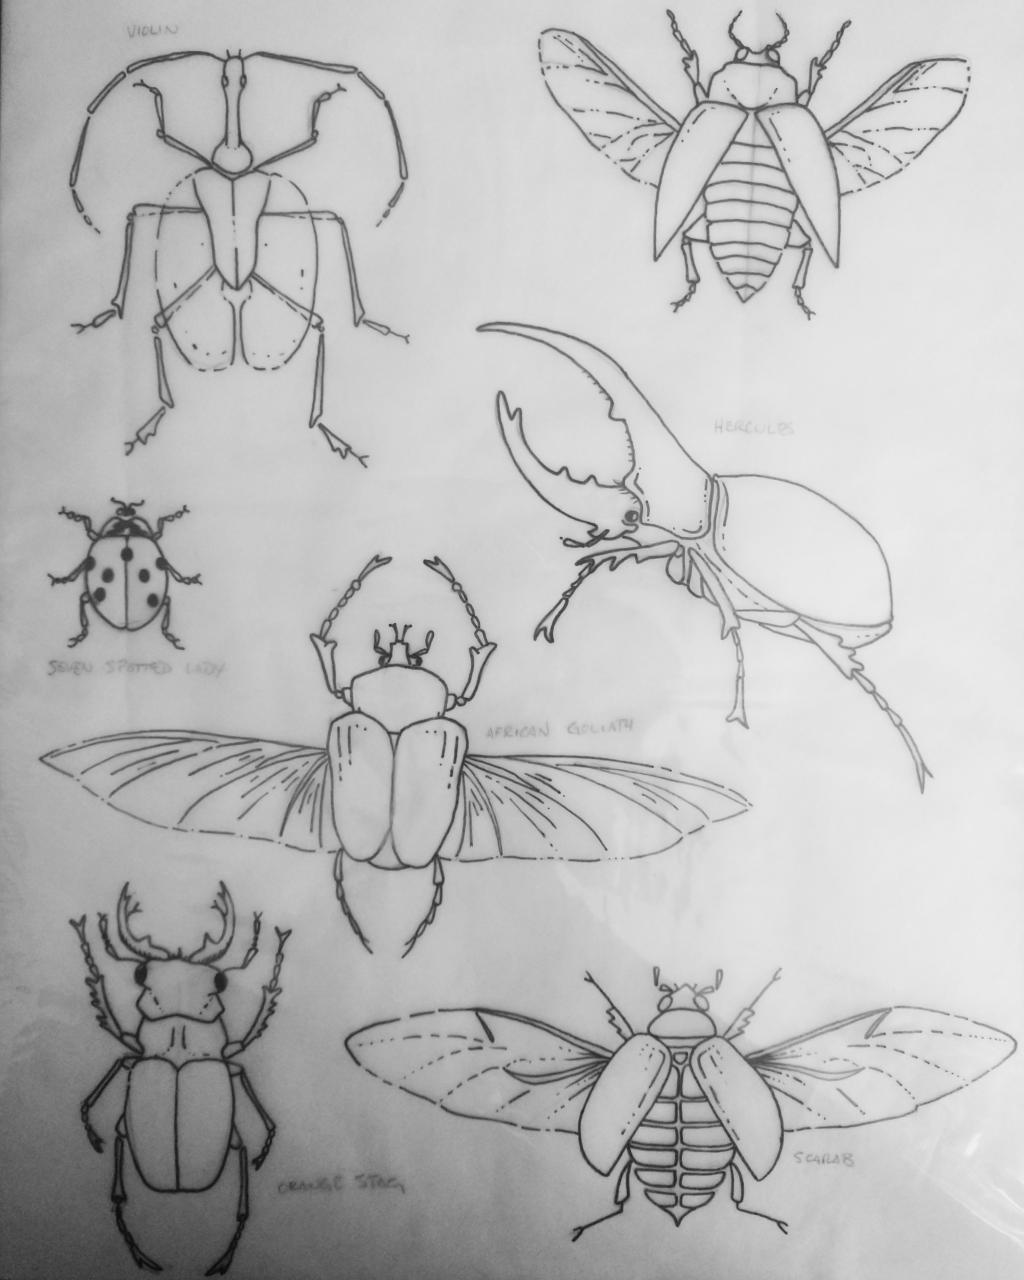 Beetles for Tattoo portfolio. Any criticism welcome.